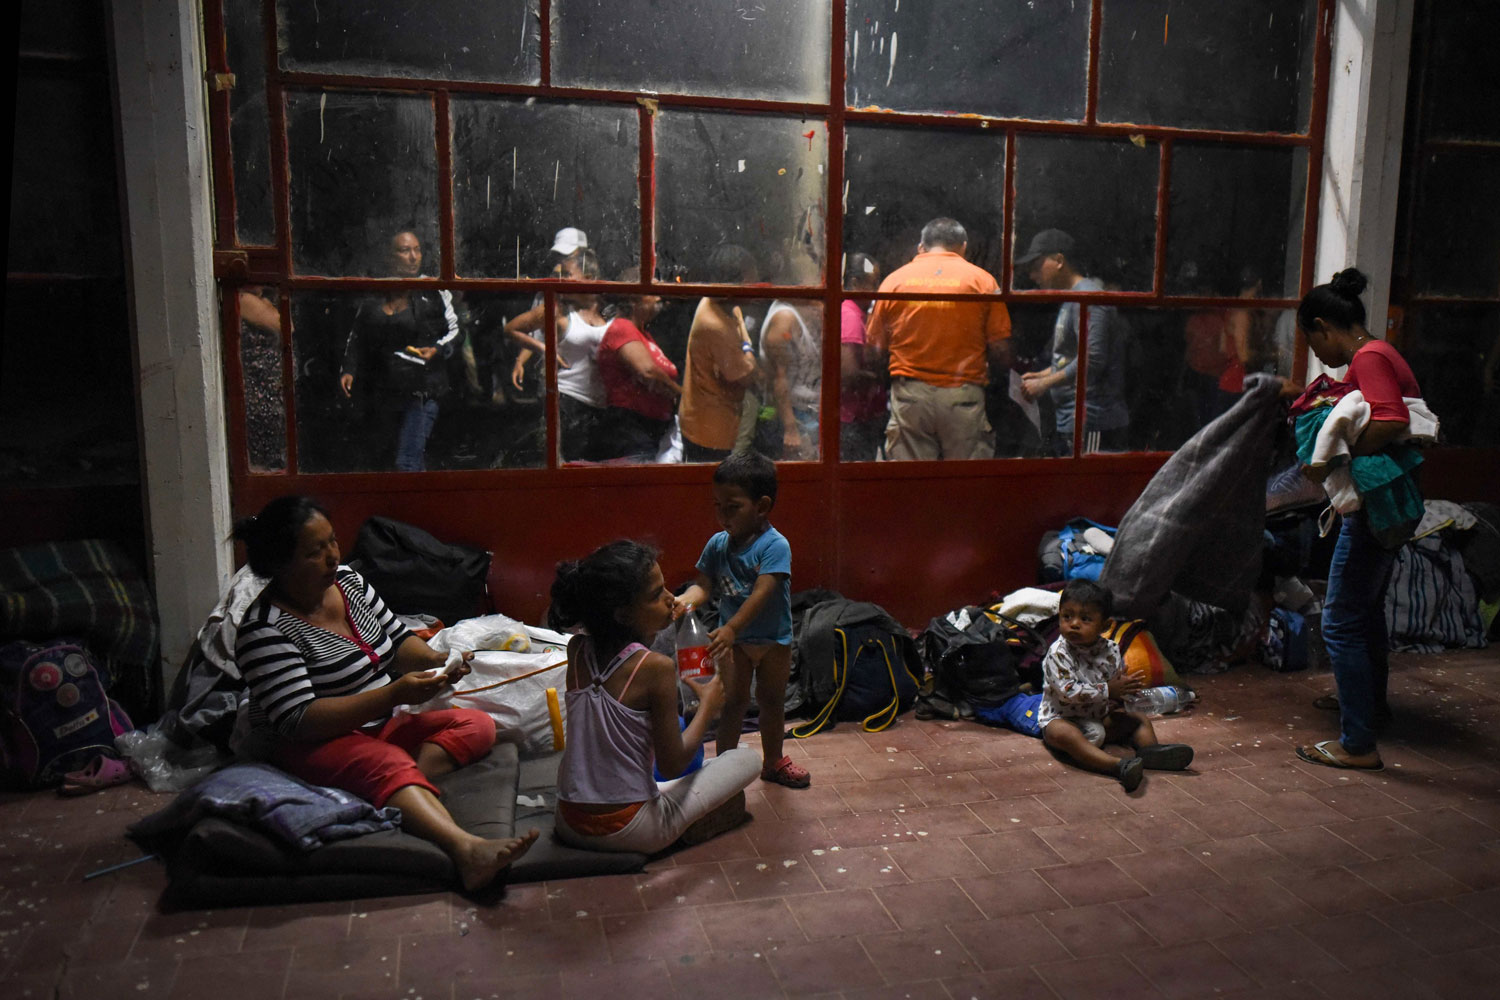 Central American migrants taking part in a caravan rest at a sports center field in Oaxaca, Mexico, on April 2. President Donald Trump lashed out over immigration, triggered by images of the caravan of hundreds headed north in what has become an annual movement to raise awareness about the plight of migrants. (Victoria Razo/AFP/Getty Images)